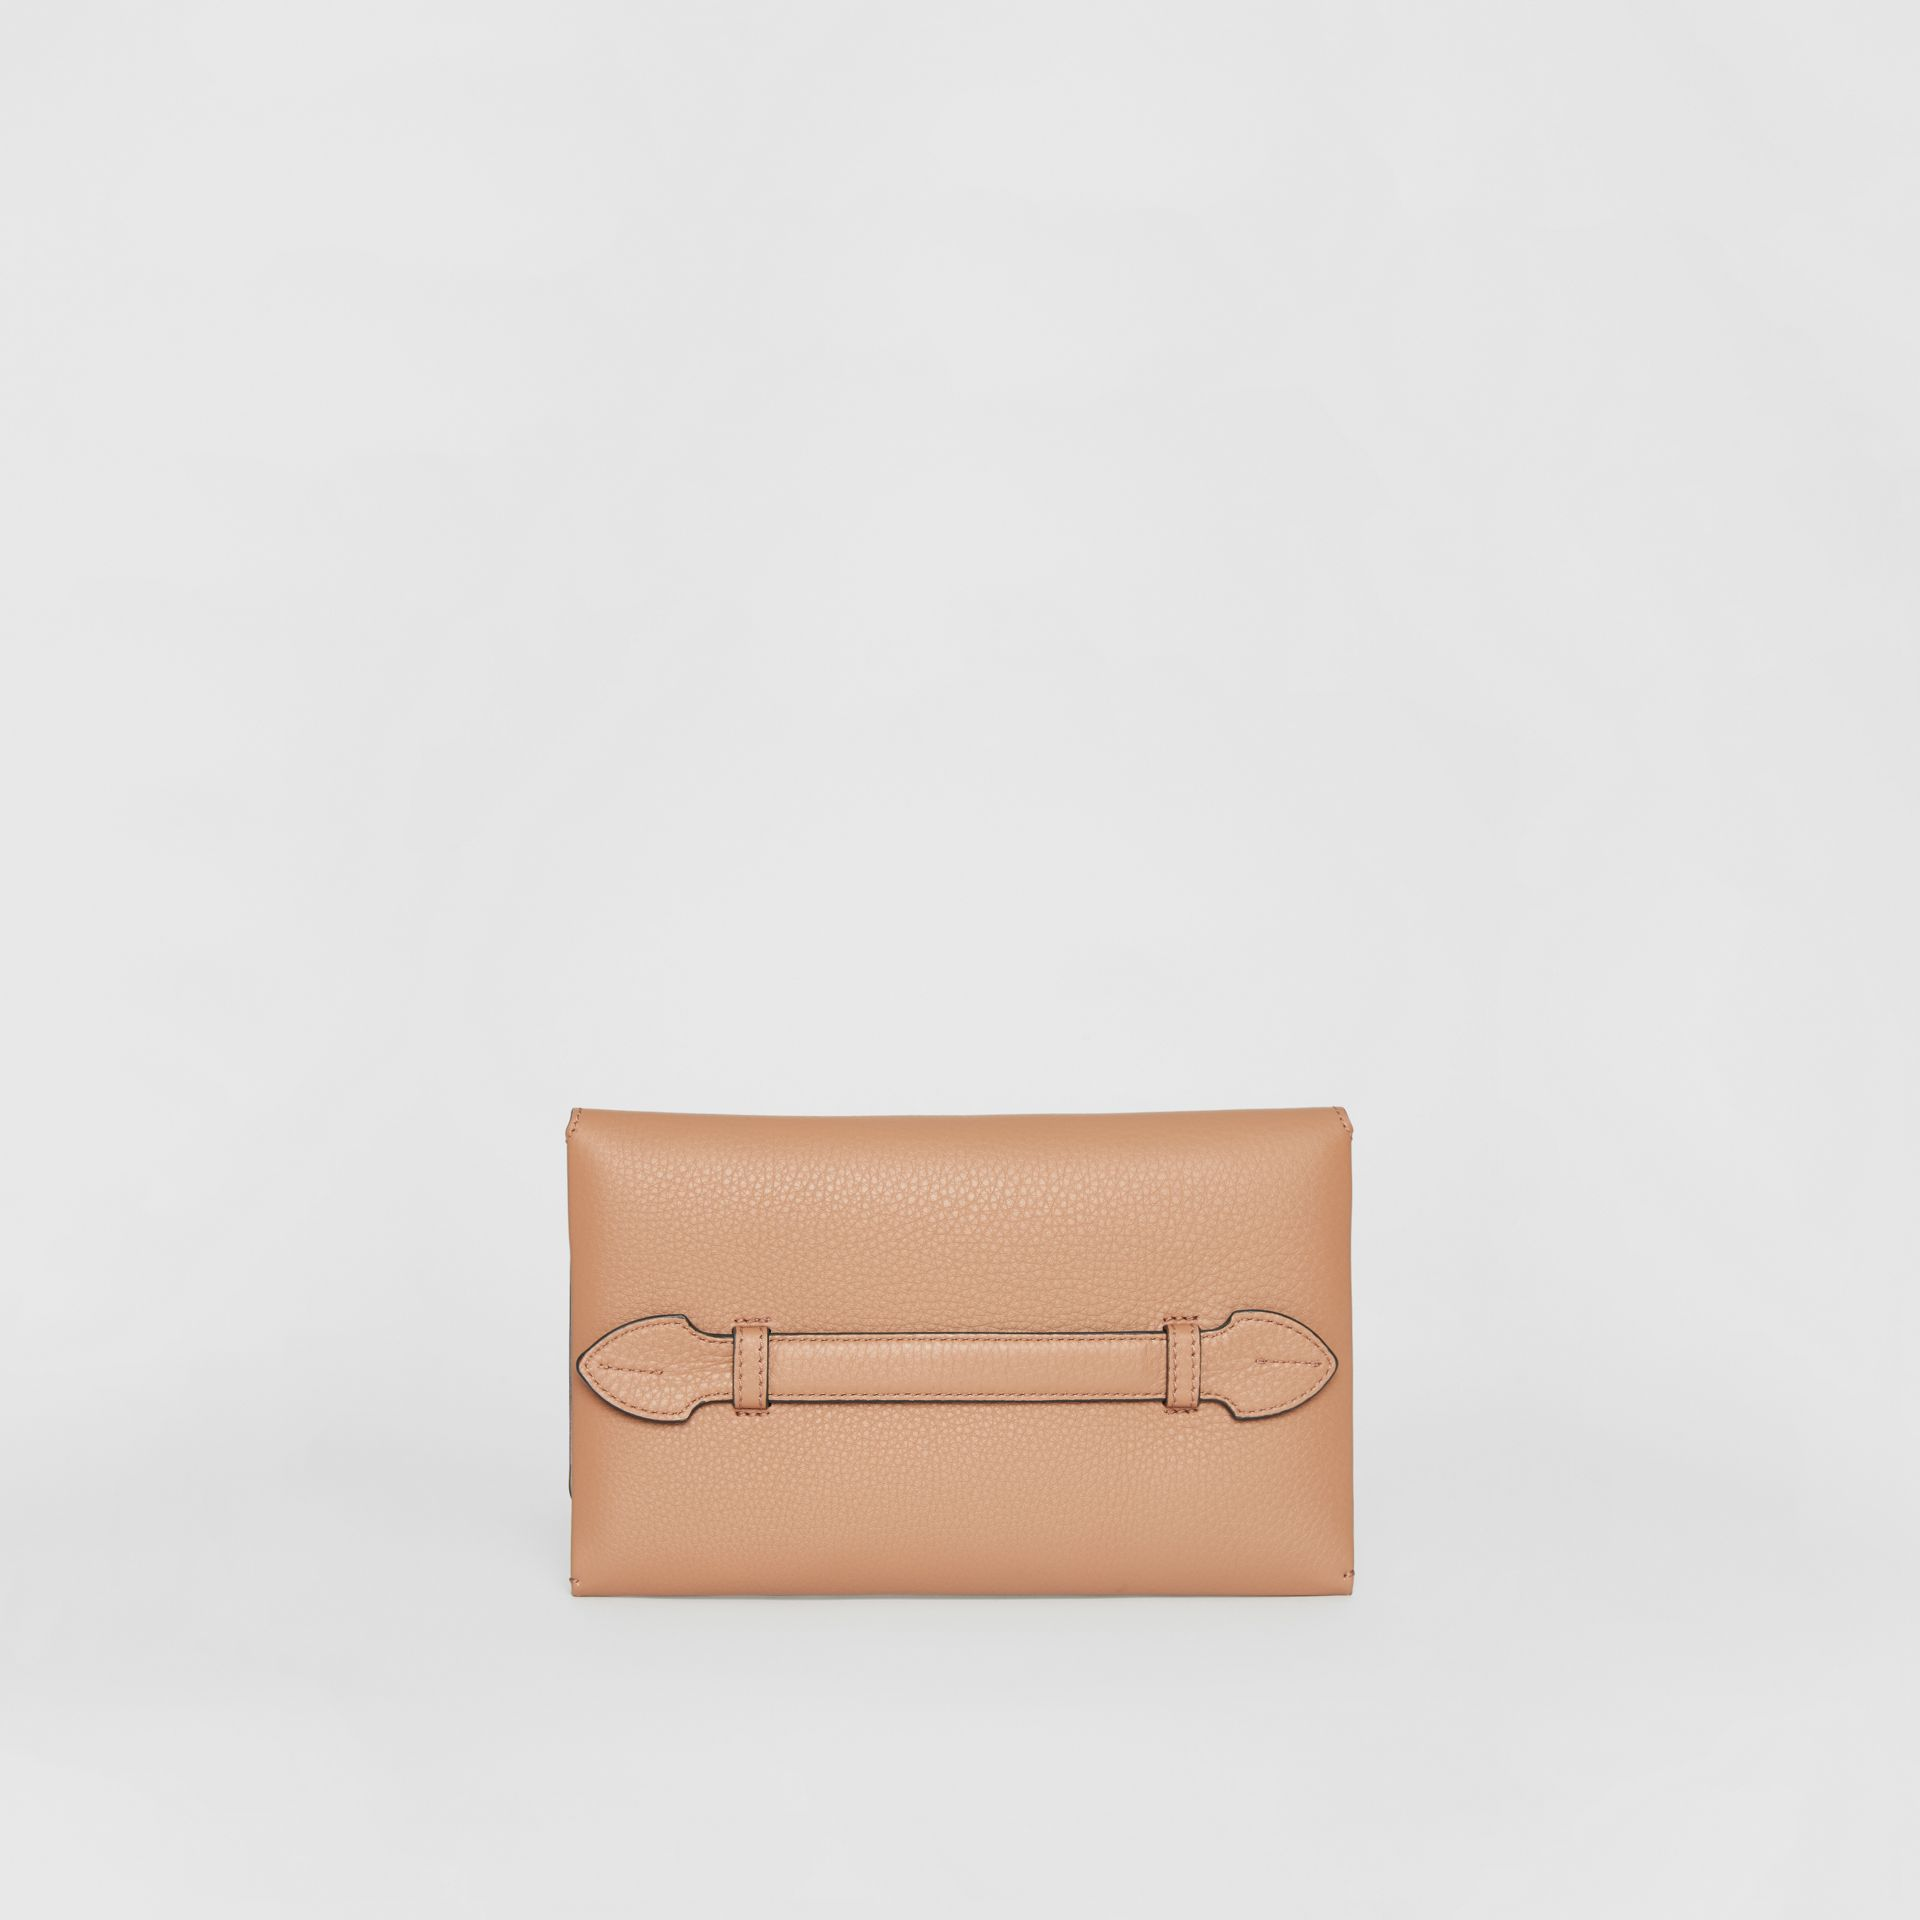 Two-tone Leather Wristlet Clutch in Light Camel - Women | Burberry - gallery image 7